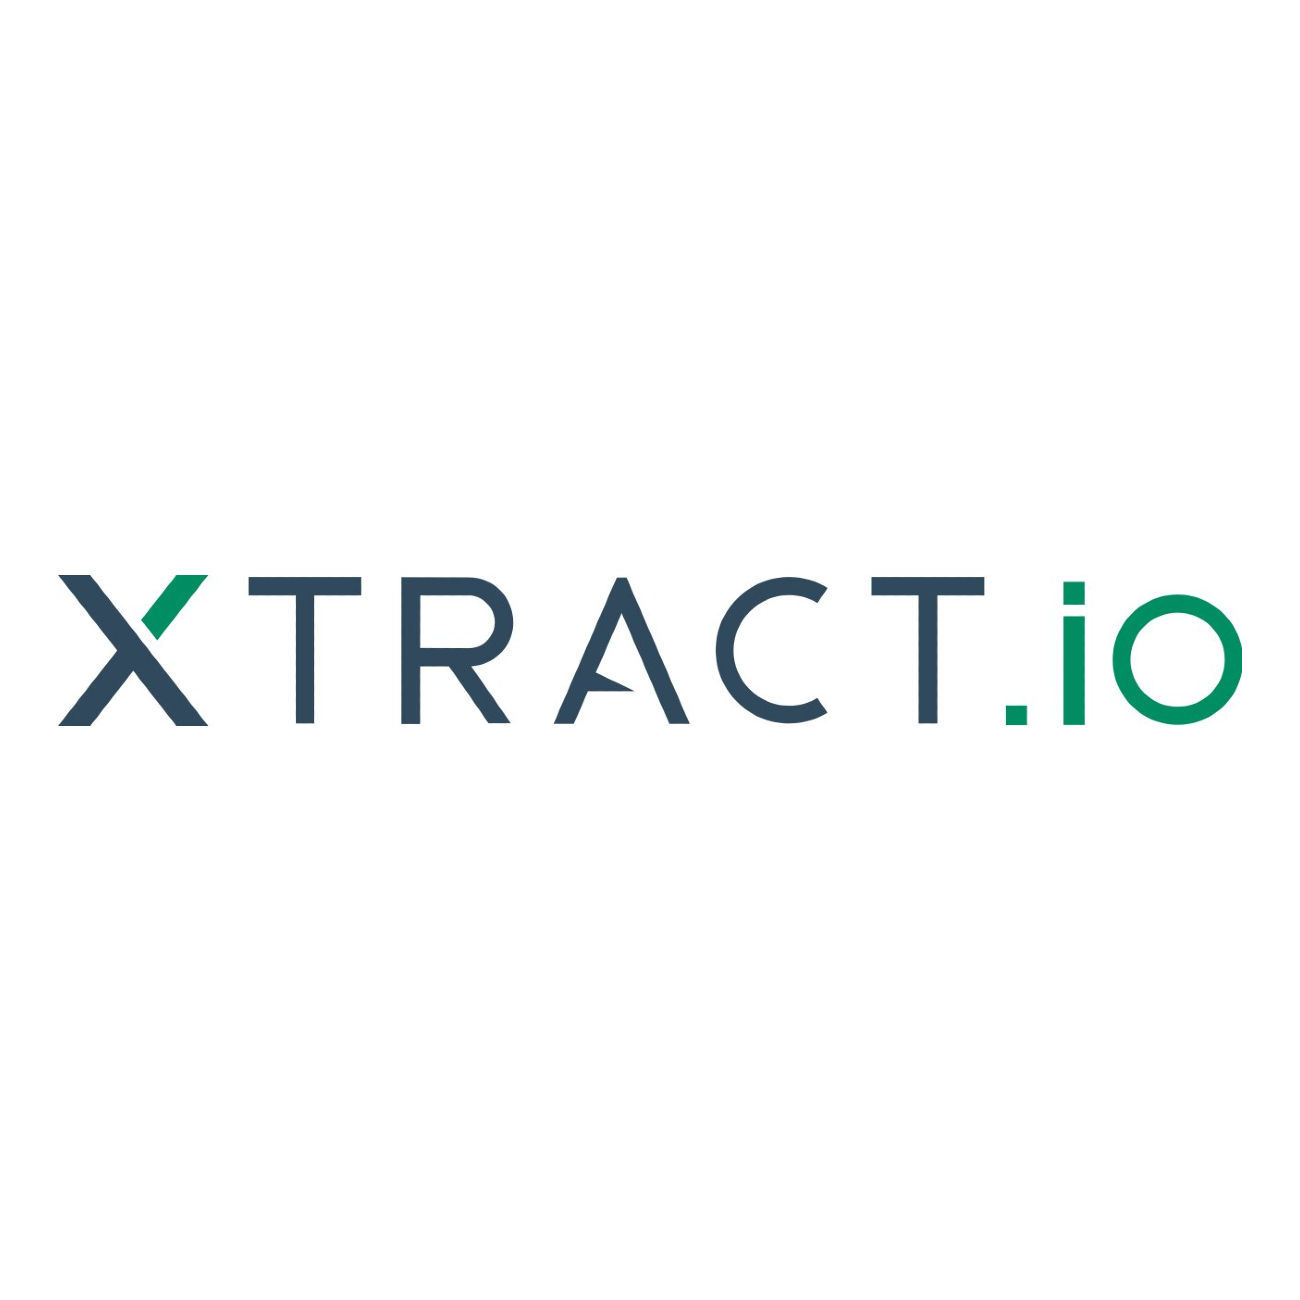 Xtract.io - Data Management Software : SaaSworthy.com